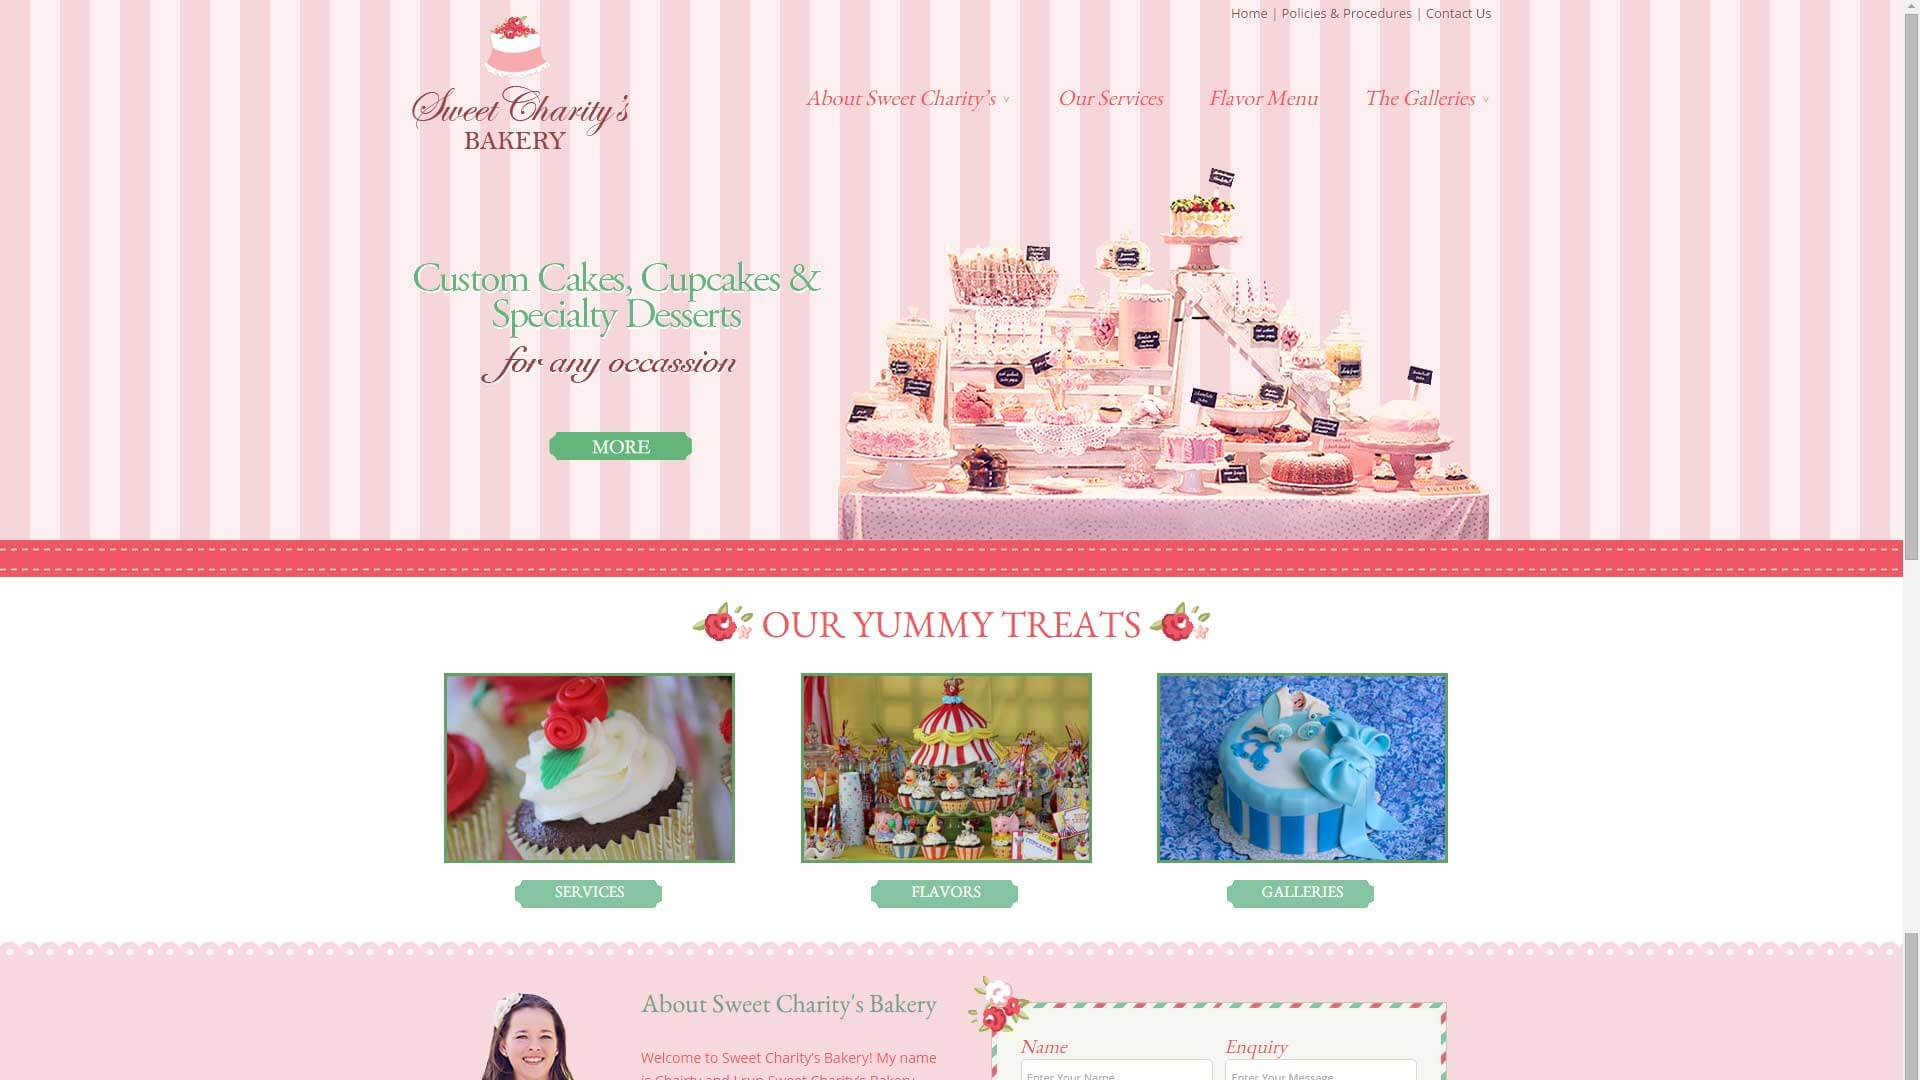 Sweet Charity's Bakery